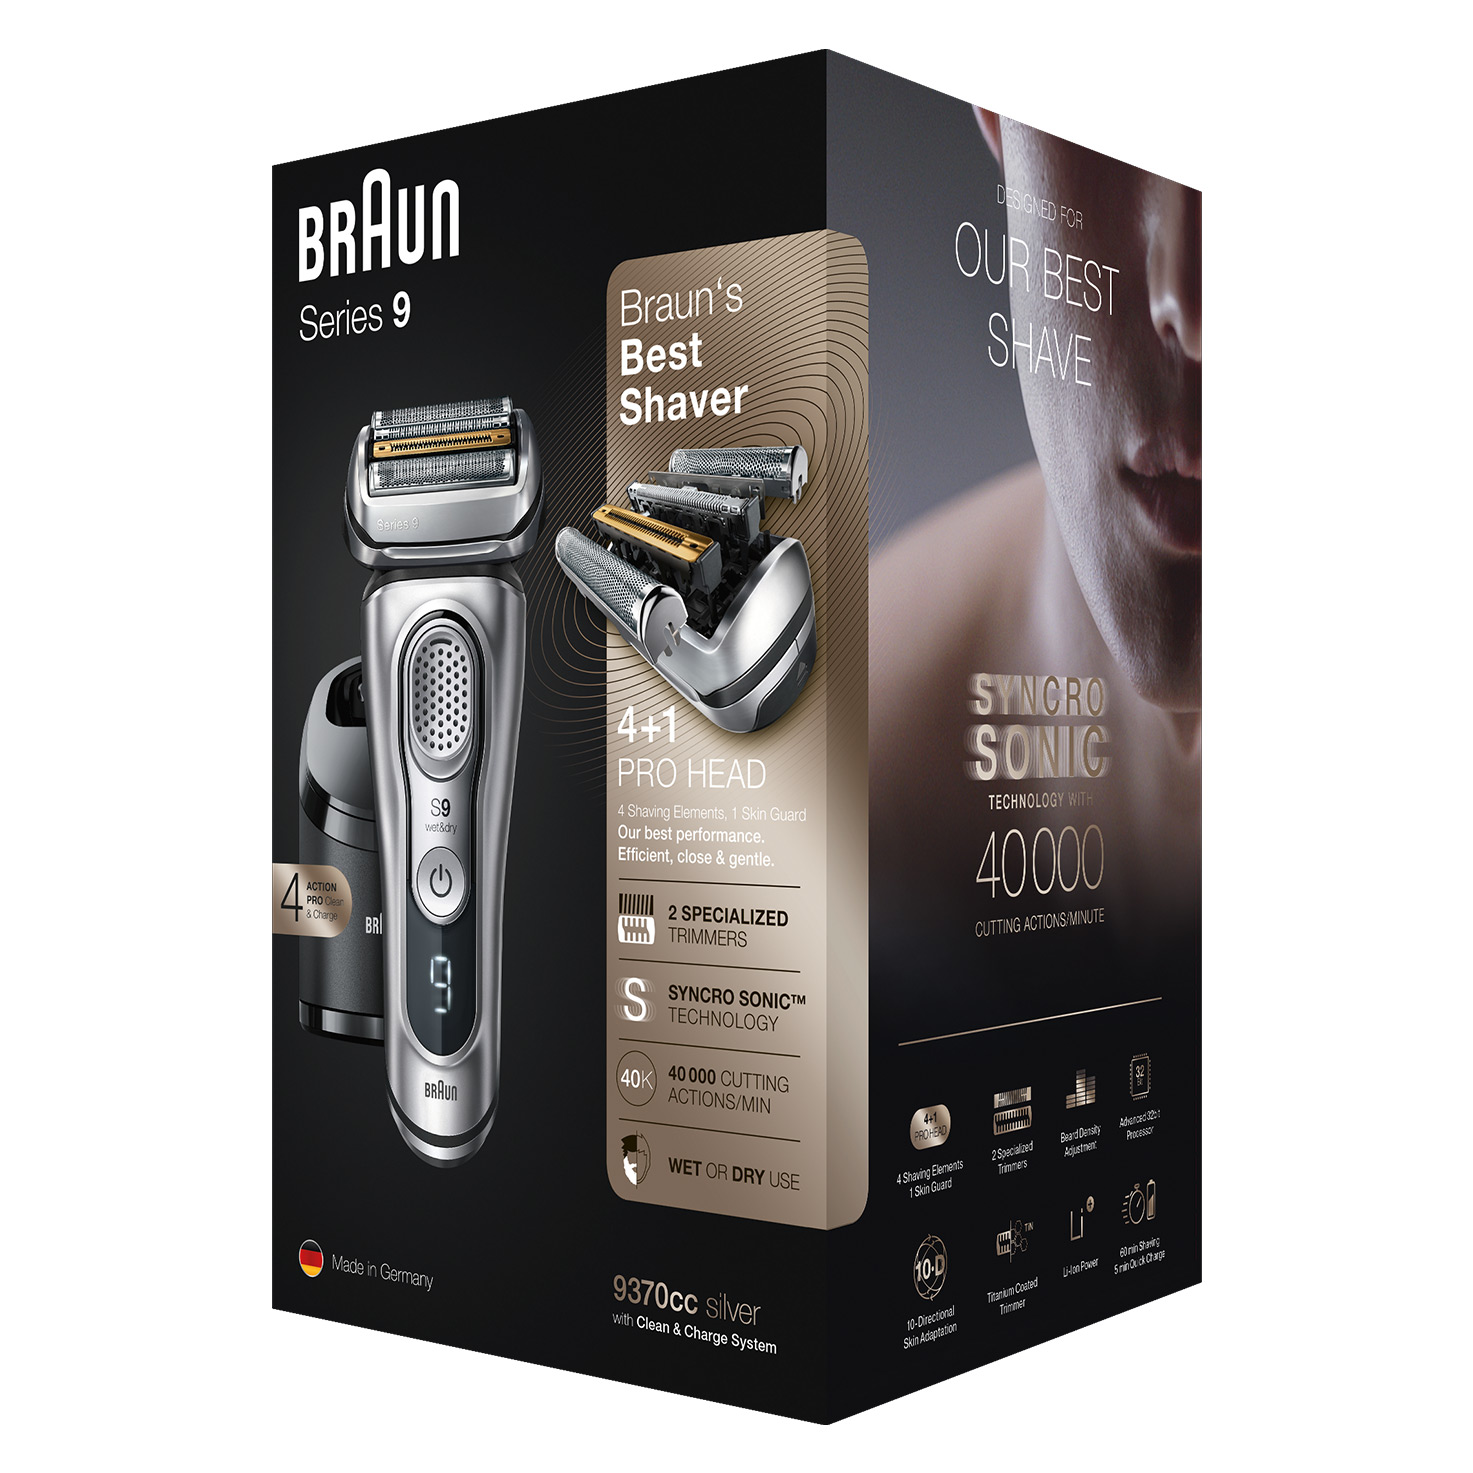 Series 9 9370cc shaver - Packaging